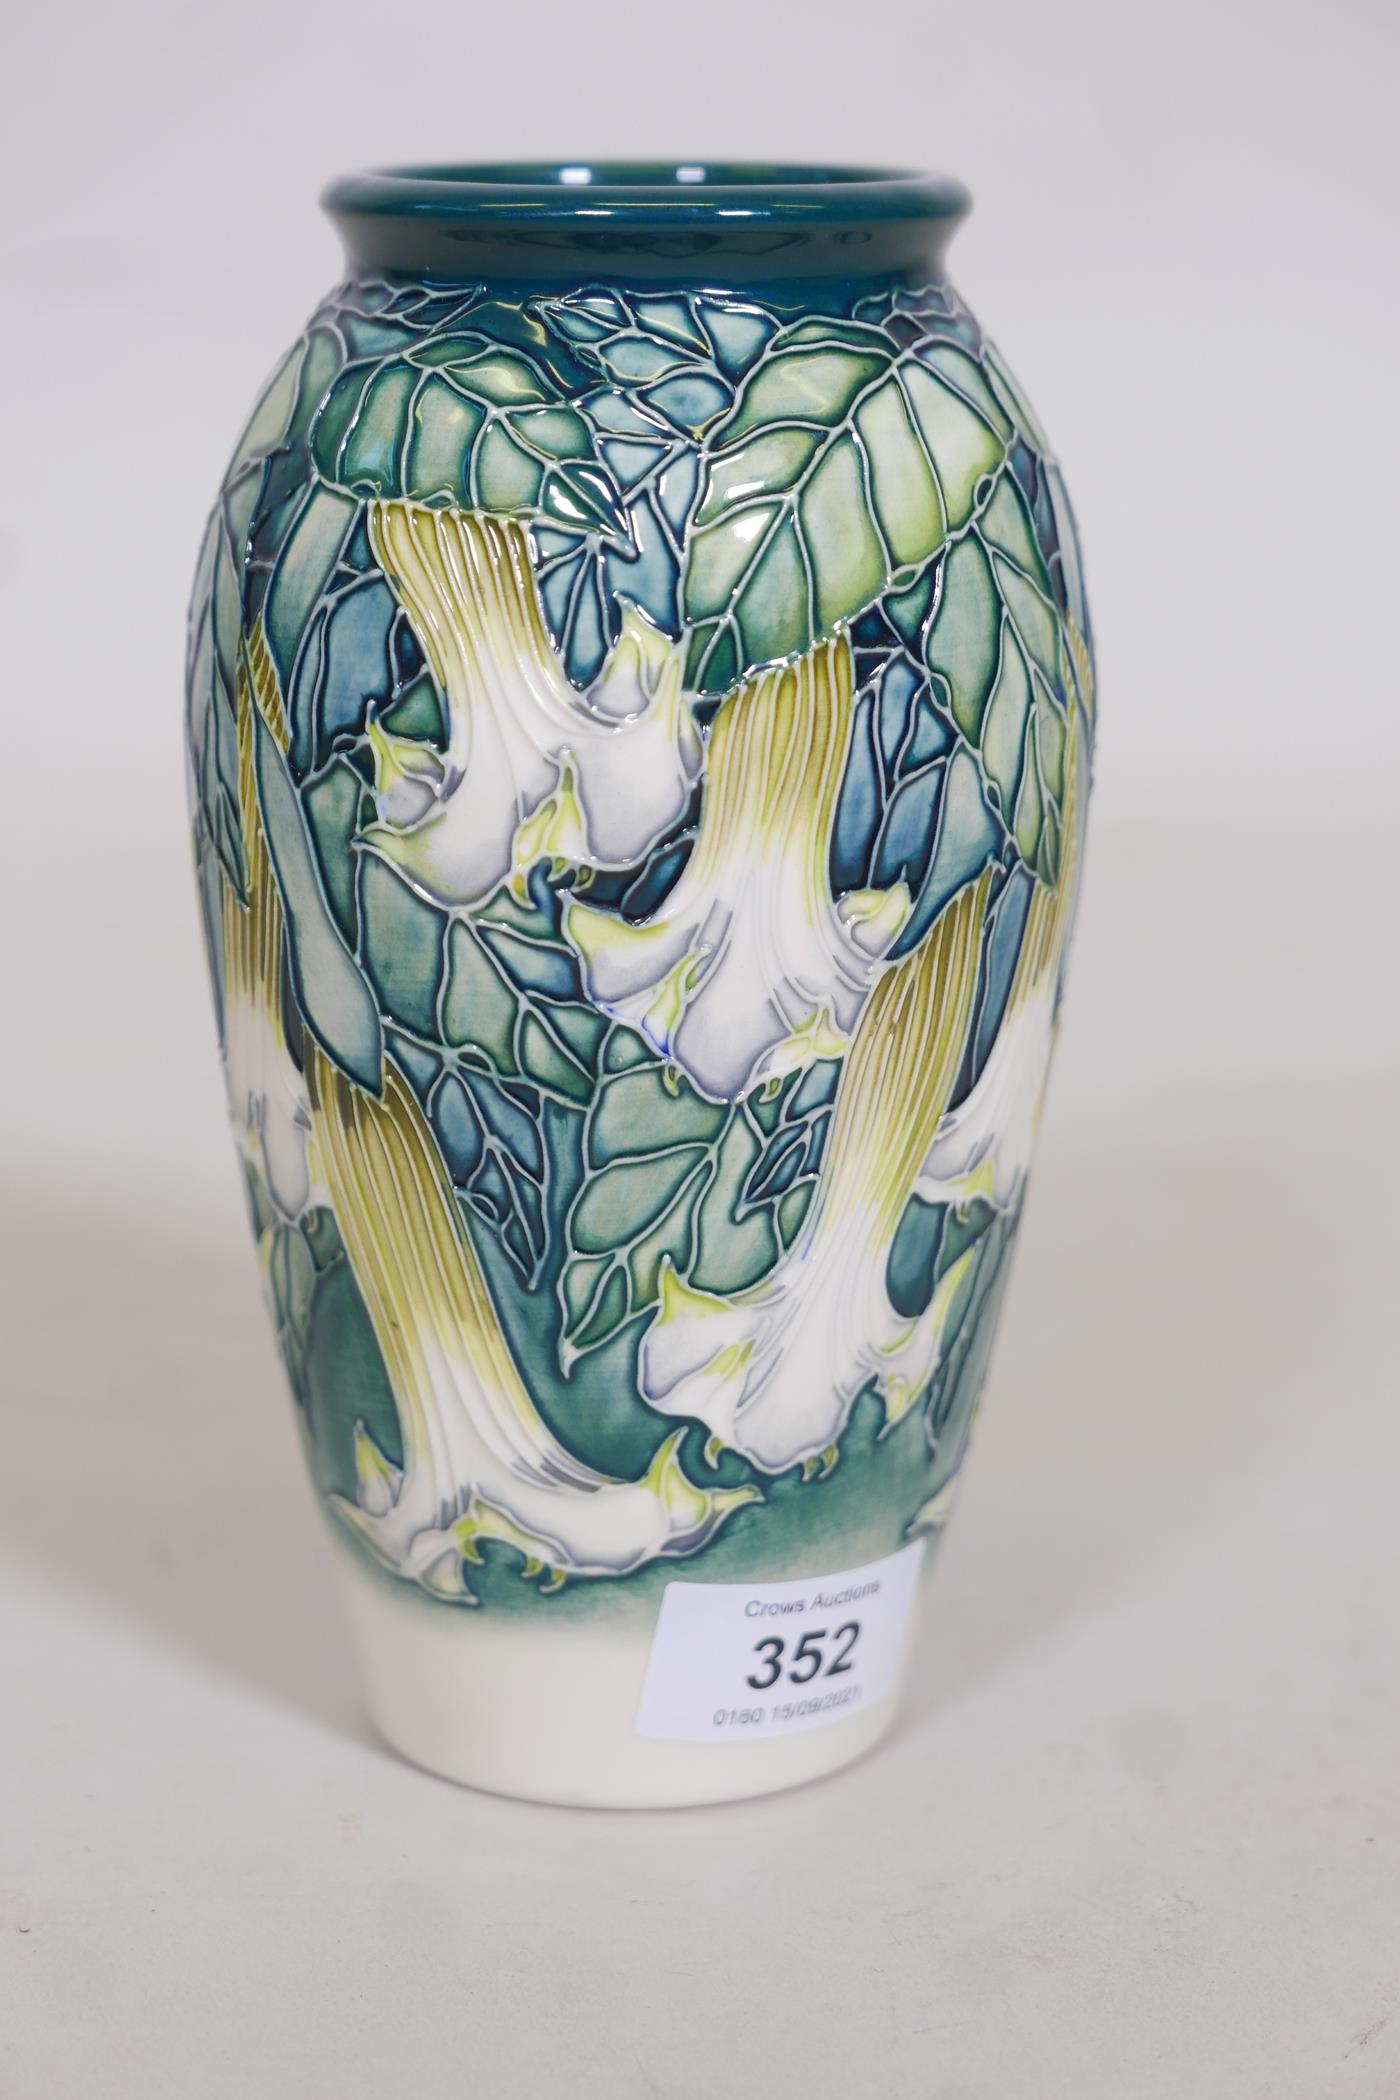 A Moorcroft vase 'Angels Trumpet' by Anji Davenport, stamped to base, 98, Moorcroft Collectors Clubs - Image 3 of 4